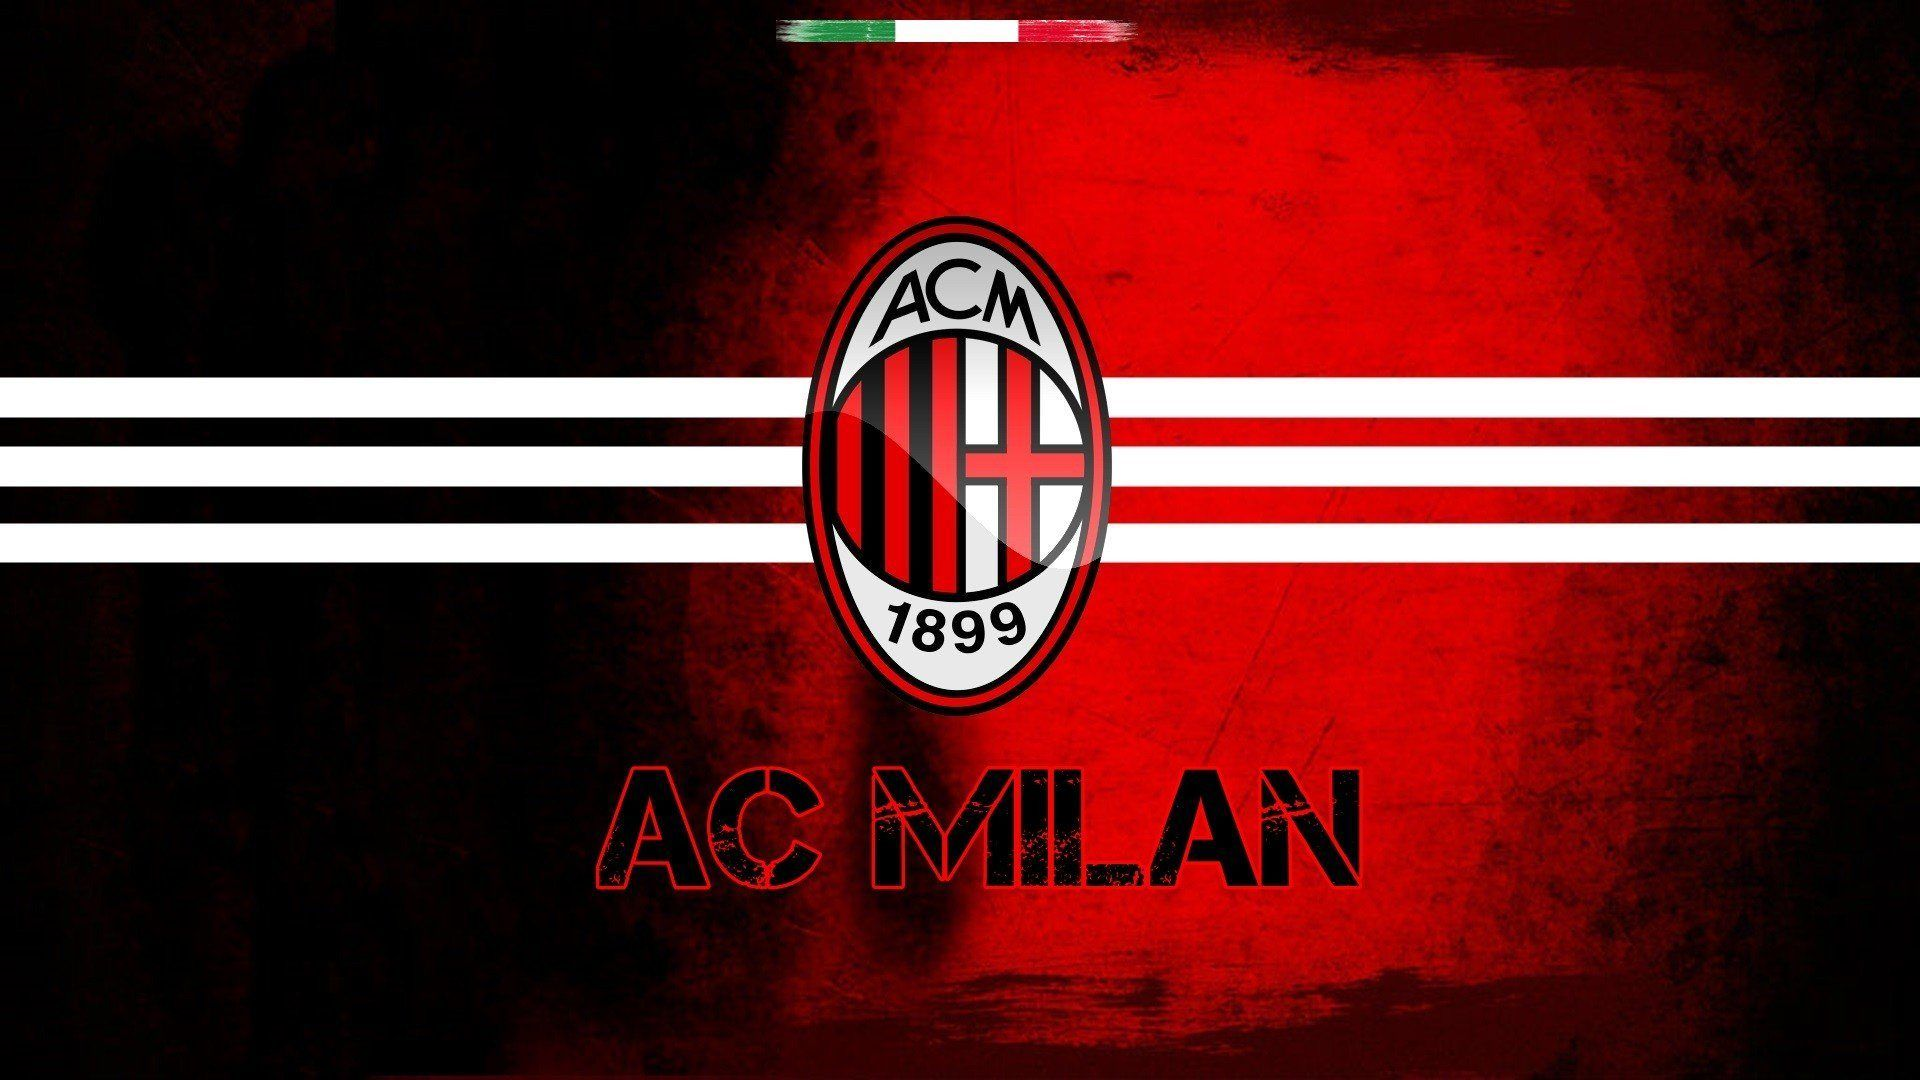 A C Milan Wallpaper 15 1920 X 1080 Stmed Net Ac Milan Logo